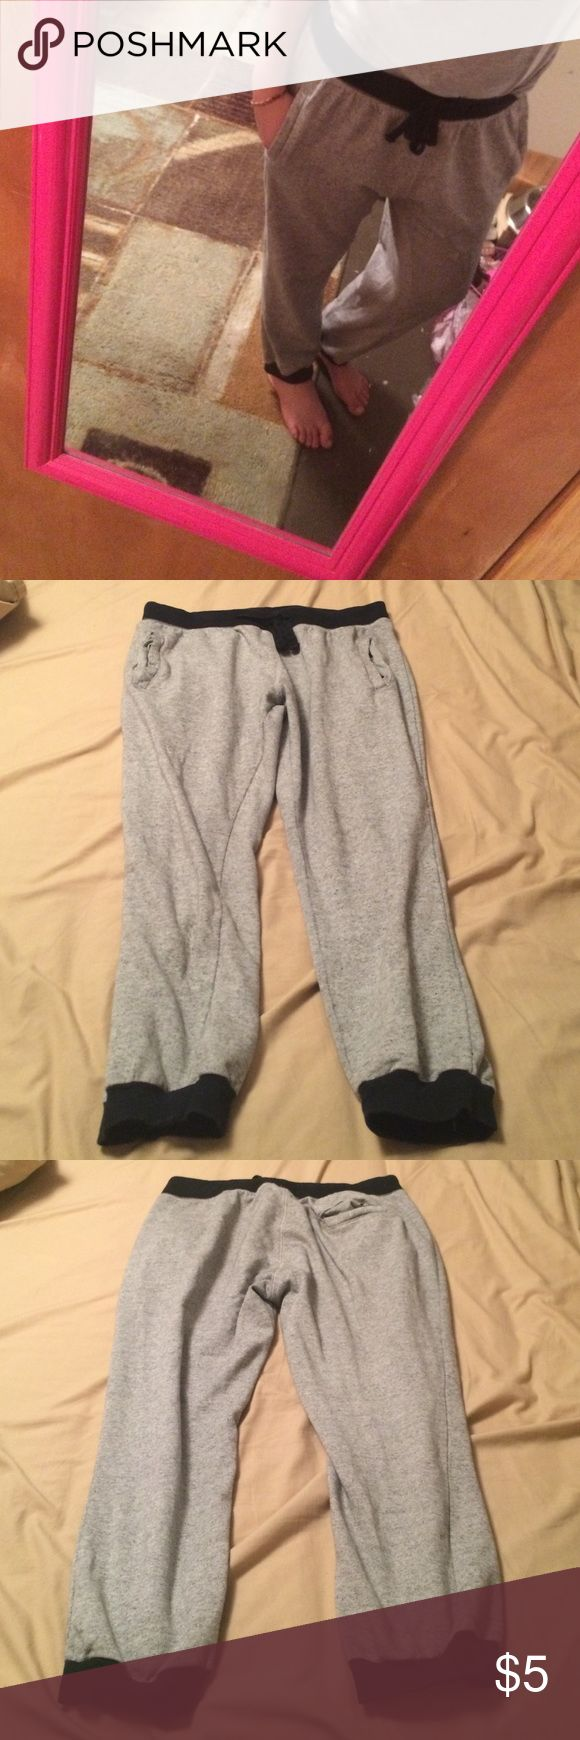 Grey joggers Hollywood grey joggers they say XL but I just tied the string around tighter and they fit wonderfully and I'm a size 28/6-7 small holes in pocket on on the very edge I wore them after the holes used condition price is really reasonable I just need some closet space 💕📦thanks for looking Pants Track Pants & Joggers